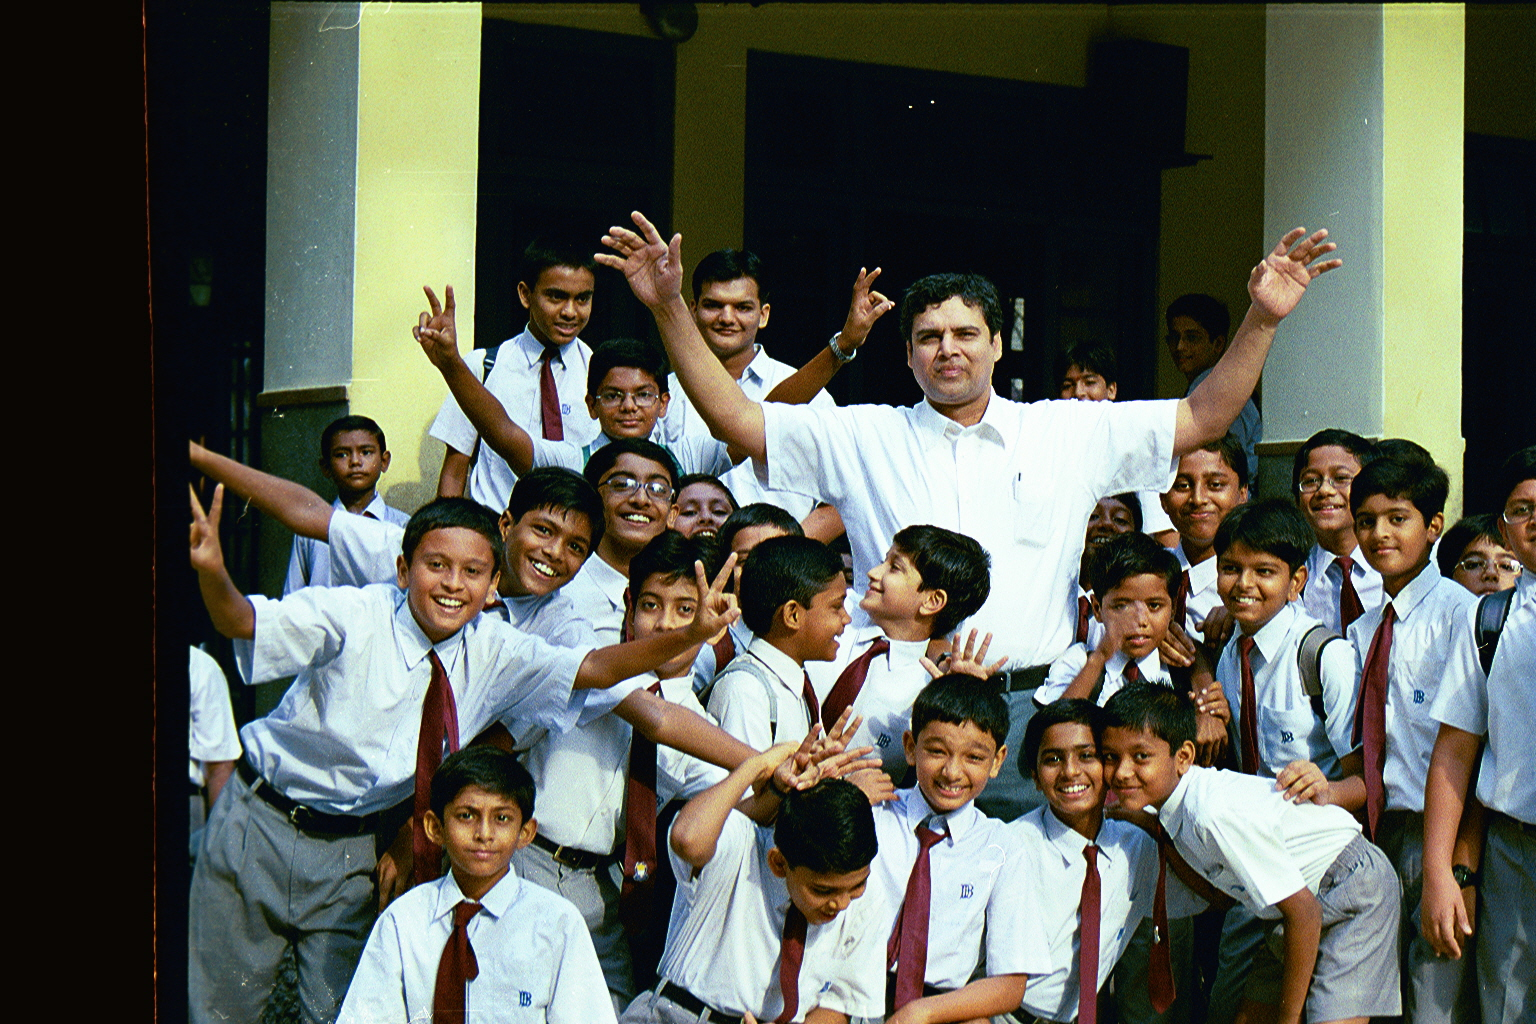 CLICK TO ENLARGE - Myself standing with the kids who were so excited & delighted, to meet an ex-alumini-student from good old U.S.A.